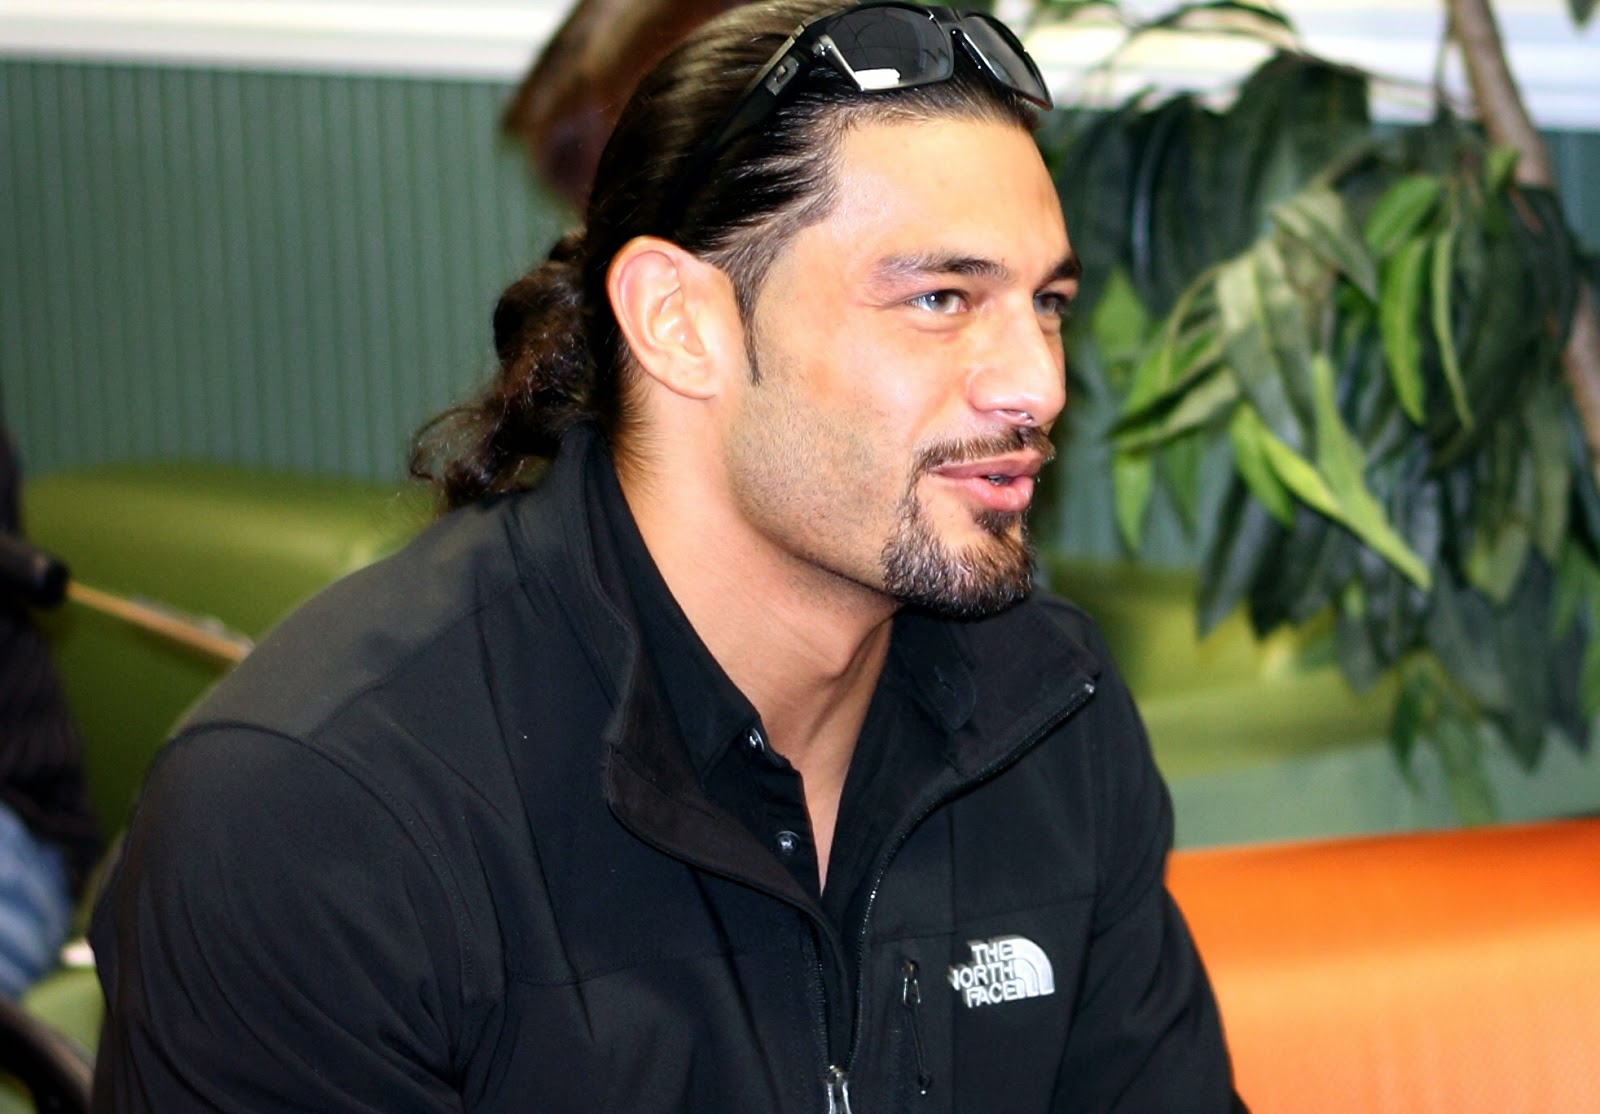 Words Celebrities Wallpapers Roman Reigns Profile With